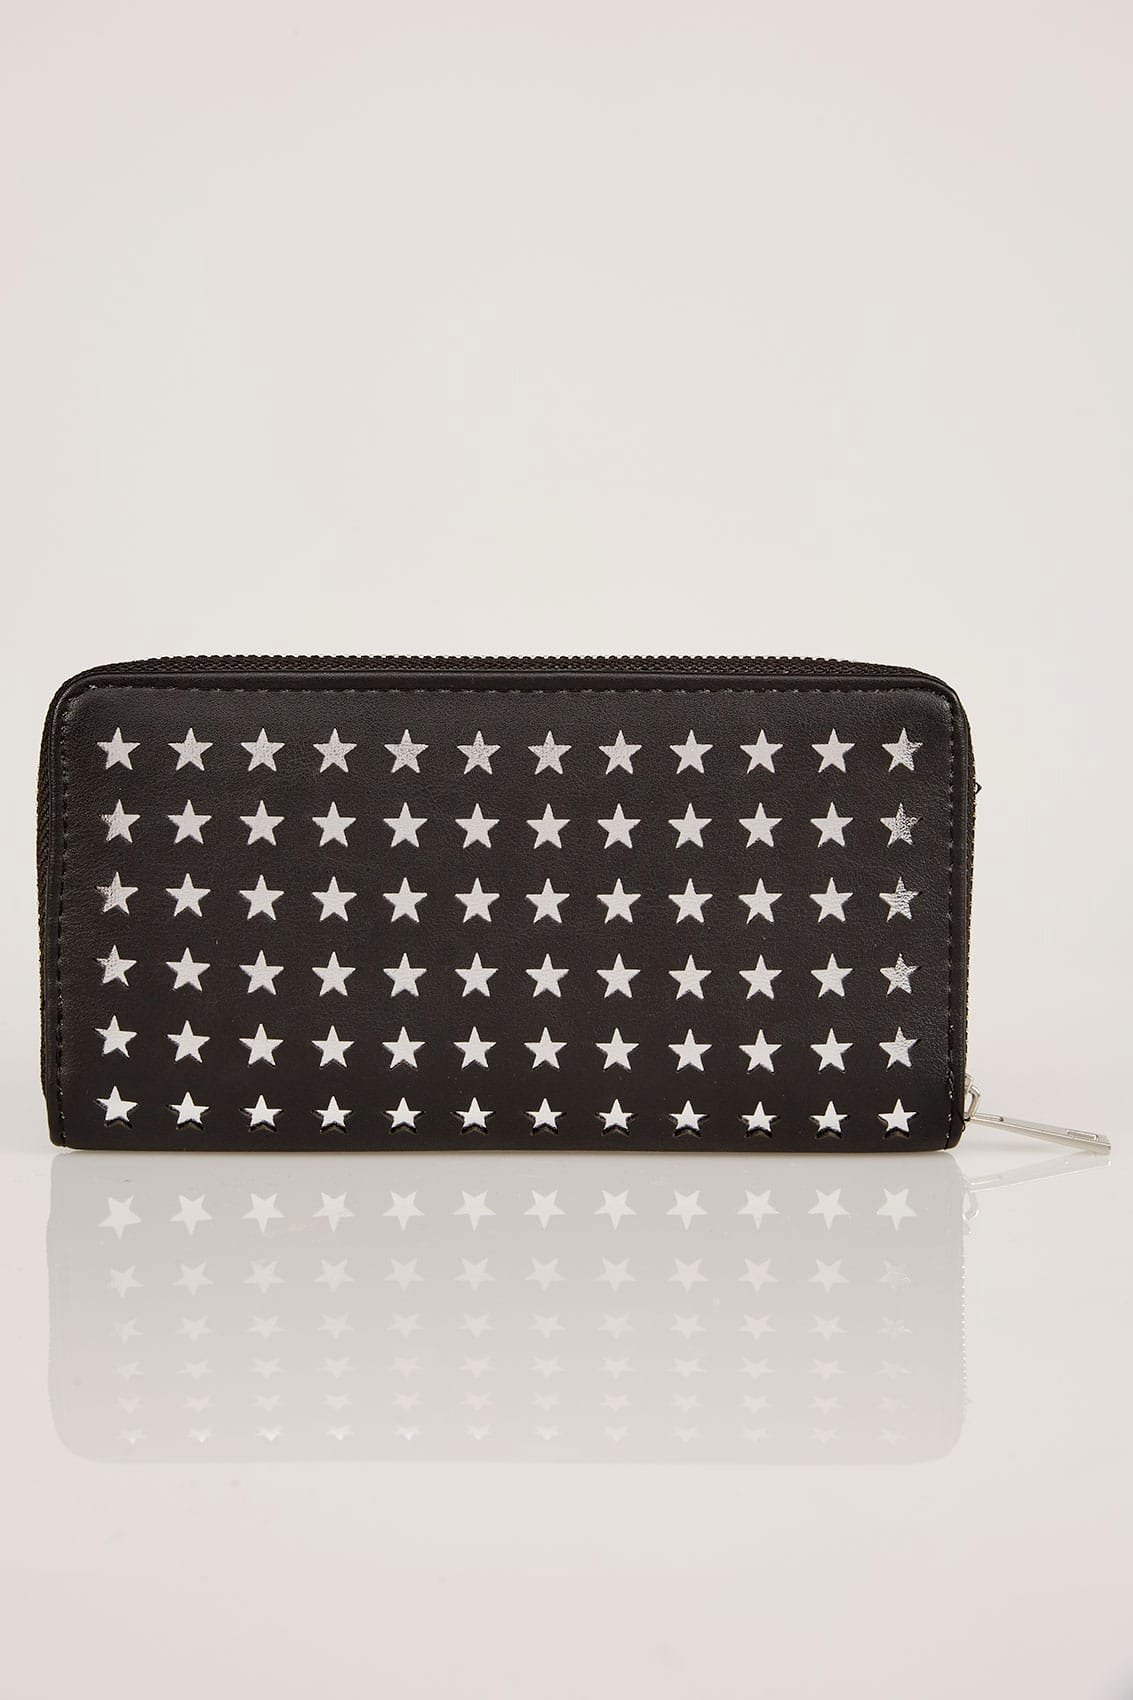 No Refund Policy Template Lovely Black & Silver Star Cut Out Purse